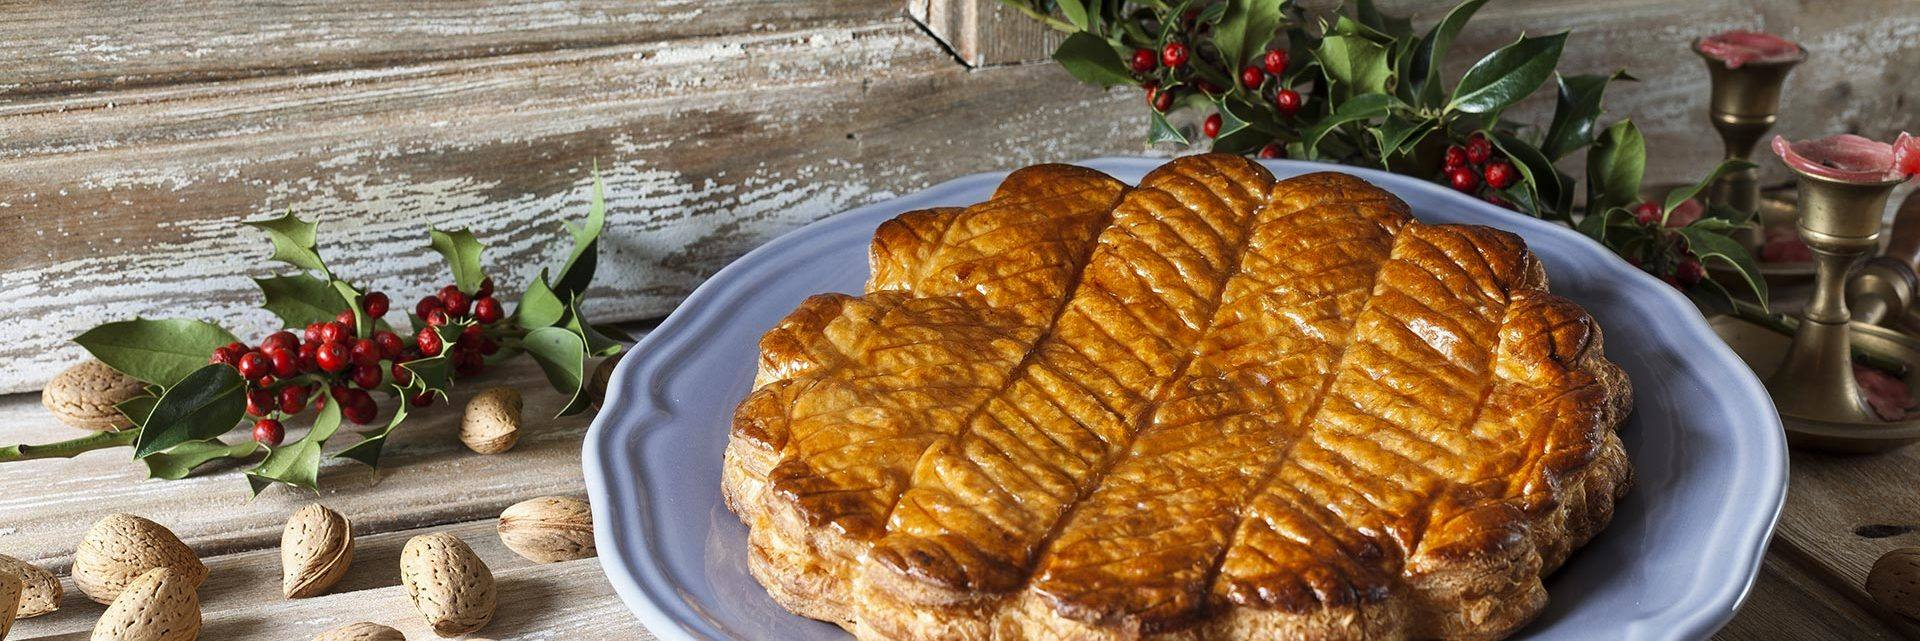 Frangipane - a traditional Christmas treat